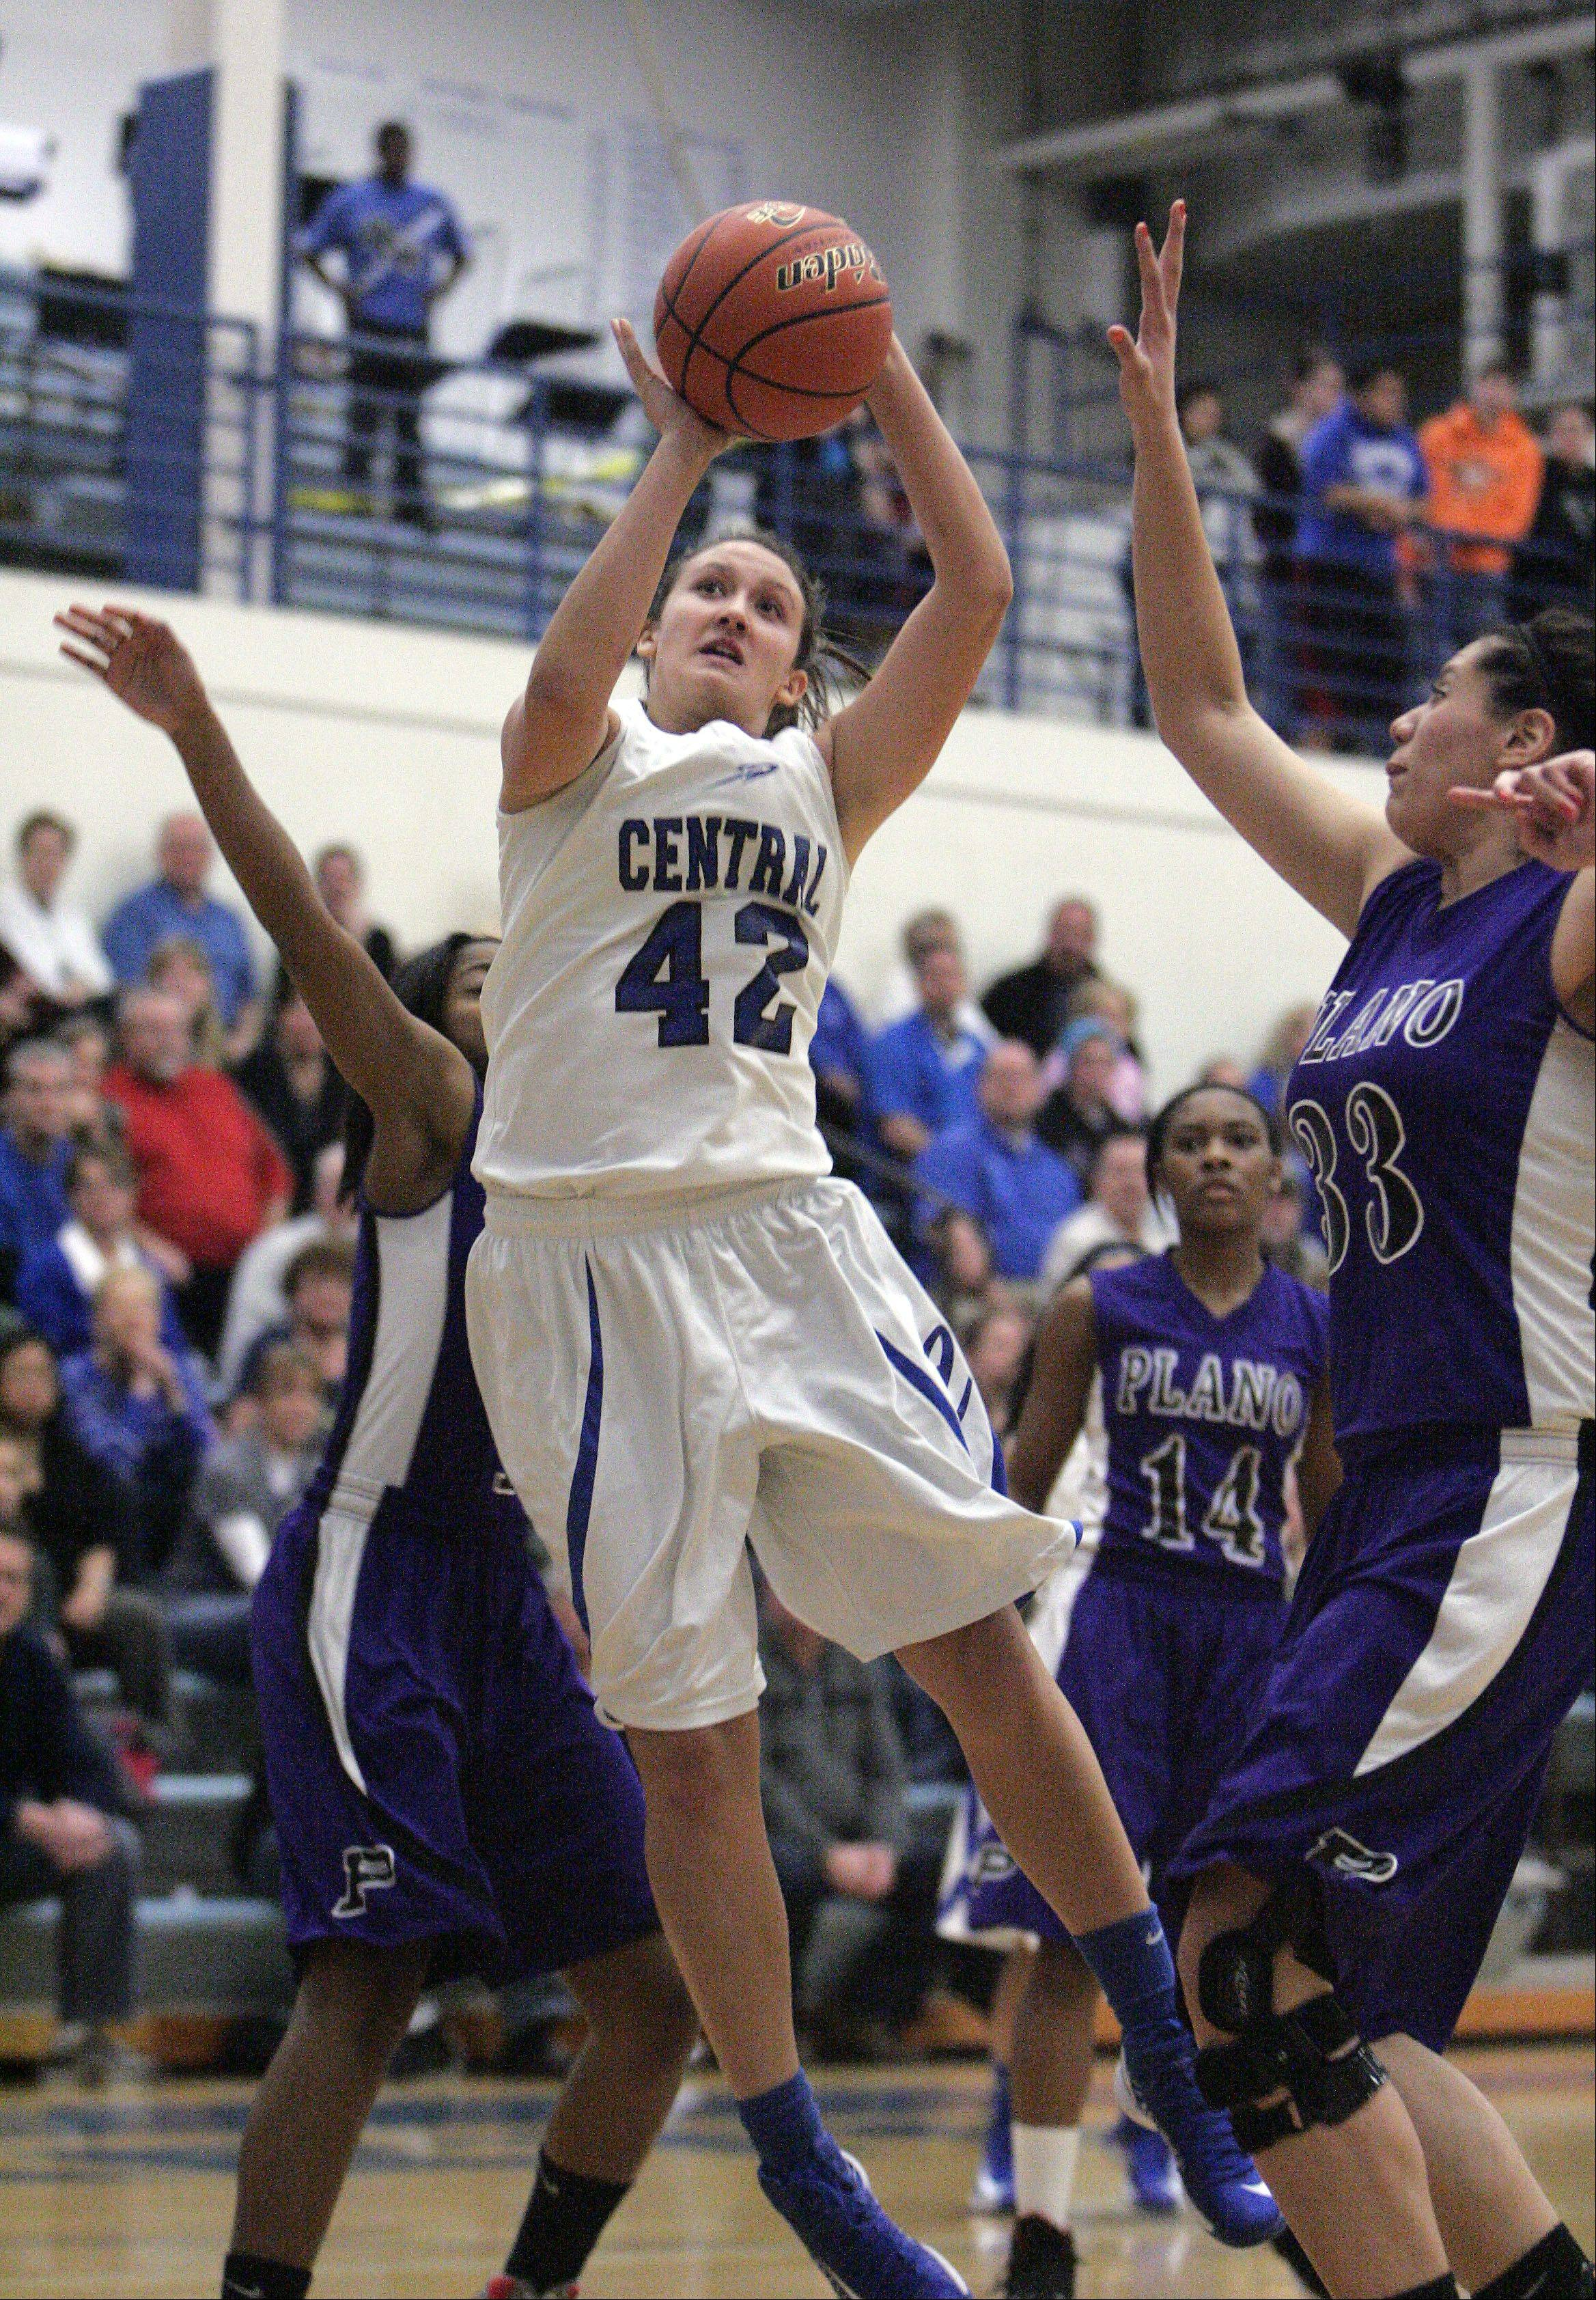 Burlington Central's Alison Colby (42) goes hard to the hoop past Plano's Clarisa Martinez (33) during the first quarter of Burlington Central vs Plano for the IHSA Class 3A regional girls basketball championship Friday February 15, 2013 at Burlington. Central won the game 38-34, which was their first regional title win since 1990.